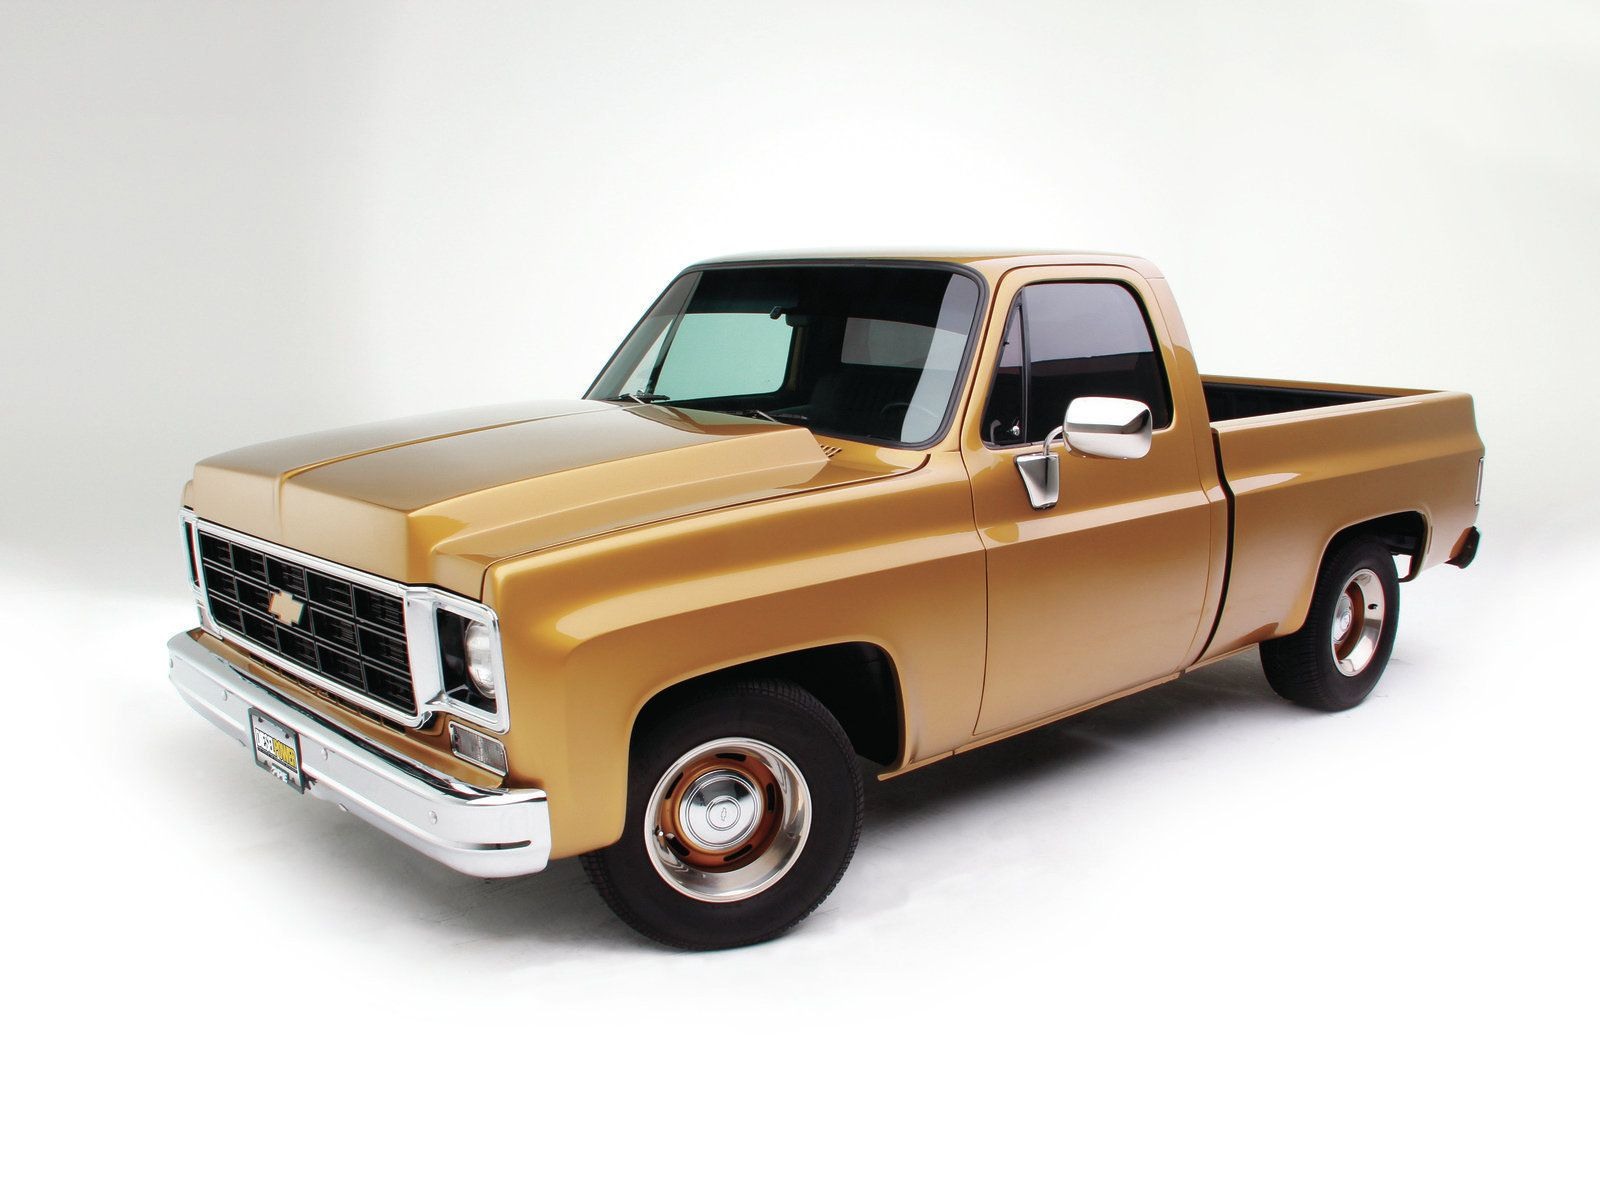 1976 Chevy C10 The Ultimate Swap Duramax Engine Photo 4 | I could ...